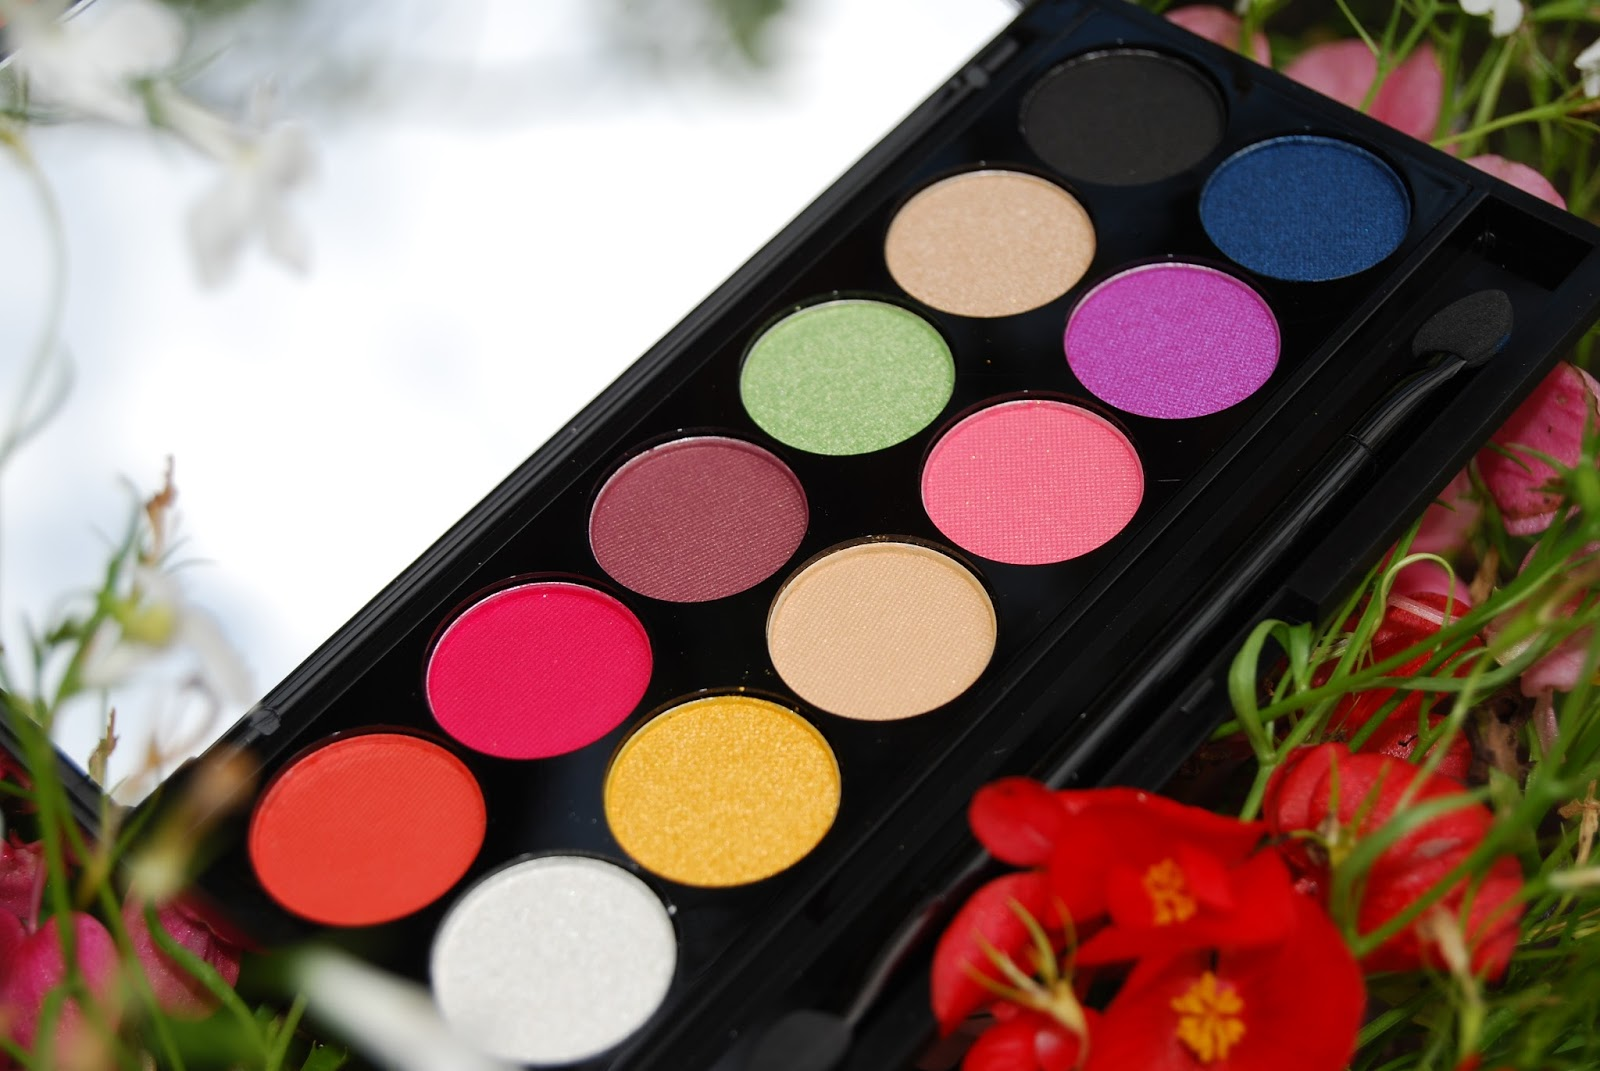 Sleek Make Up Rio Rio i-Divine Palette Limited Edition Eyeshadow